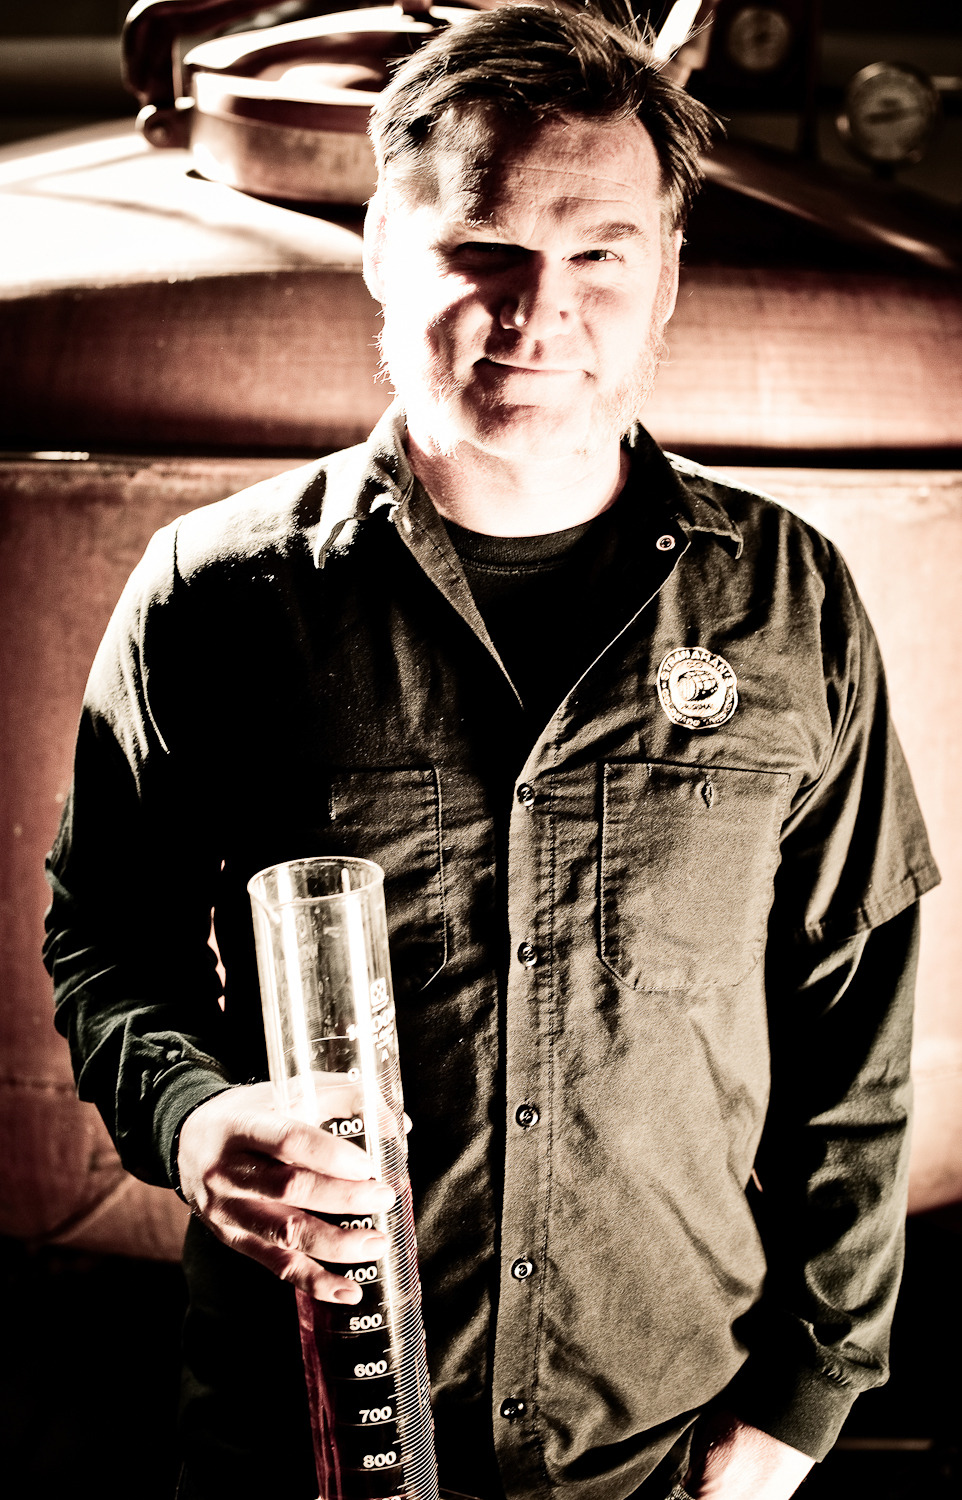 "Still Speak: The Craft of Barrel Aging By Rob Dietrich, Head Distiller What makes a great whiskey? Is it a bit of malted grain or corn, a strain of tamed or wild yeast, and a splash of the purest water? Absolutely, but just these ingredients are not enough.  Great whiskey also needs time – time in the finest casks available. It takes a lot of care and preparation to produce the finest whiskies in the world and it all ends in finding the right barrels to rest your hard-won spirit in. It begins with grain. In order to make whiskey, you've got to start out with the intentions of making the best whiskey. That means the finest grains, the healthiest yeast, the best stills and the perfect casks.  Let's say you want to make an American straight whiskey. A unique set of rules applies, and with a little bit of skill and a lot of imagination you can produce a top-quality whiskey. If you were working right alongside us here at Stranahan's, you would start with 100% malt-barley – the majority of which is malted locally – and the purest water. You would use our proprietary yeast for fermentation and Vendome stills for distillation. Now it's time to barrel! You would use 100%, brand new, White American Oak casks with a #3 char in which to age the spirit. The staves are dried and cured for three months before being trimmed to fit an individual barrel, then charred with a great deal of flame before adding the butts of the barrel. By charring the wood, the natural sugars, vanillin and tannins rise to the burn surface, where the spirit can readily interact with those flavors and absorb them. 100% of the color comes from the wood and almost 50 to 60% of the flavor of whiskey comes from the wood itself! So why do we use new barrels and namely, white oak? In order to be designated a ""straight"" whiskey, the spirit must be aged in brand new, white American oak casks only once, and aged no less than two years. I relate barrel-aging to using a teabag. You will get a strong cup of tea on the first use of the teabag, but on the second or even third uses, you will get a very watered down, less flavorful tea, or at the very least, it will take a lot longer to extract the desired flavor. The same can be said for barrels. That's why you see 8- or 10- or 12-year Scotches. It takes longer for those flavors to be extracted once that barrel has already been used. It takes a lot of effort to properly produce and age a whiskey – you have to have a lot of patience and foresight. As I frequently tell guests who tour our facility, I am constantly living in the past, present and future. What we produced in the past affects the present. What we produce now affects the future. What we harvest today affects everything… Cheers, and happy drinking! Rob Dietrich, Head Distiller Stranahan's Colorado Whiskey"